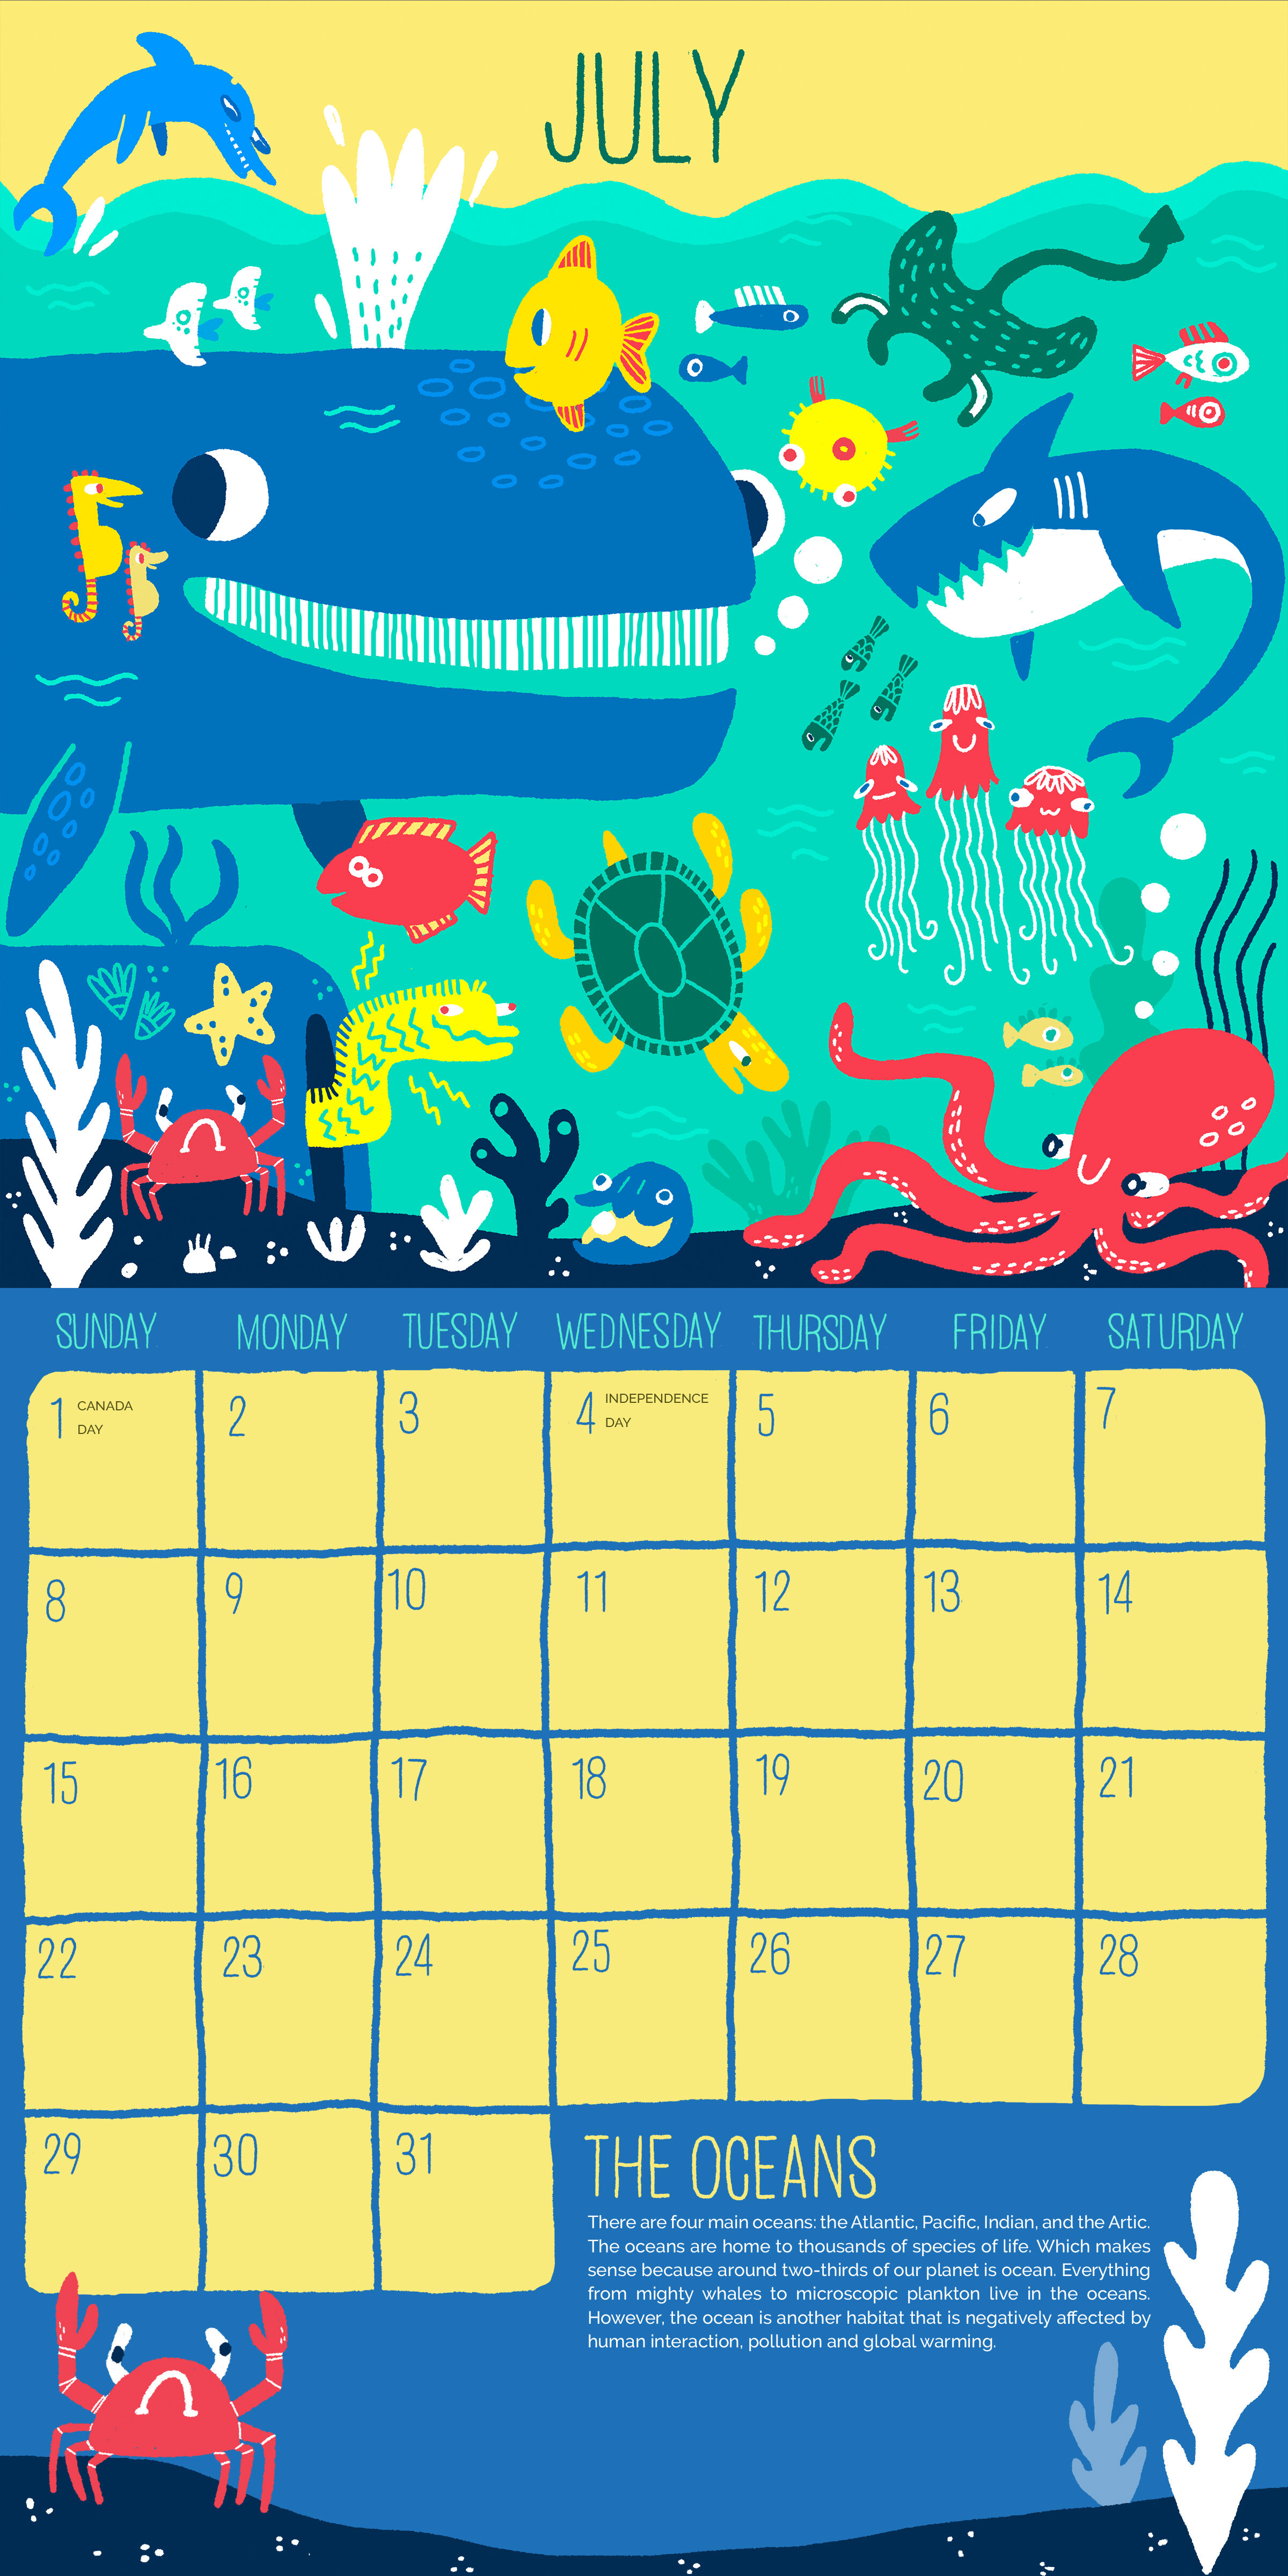 Call of the Wild Calendar: July (Oceans)